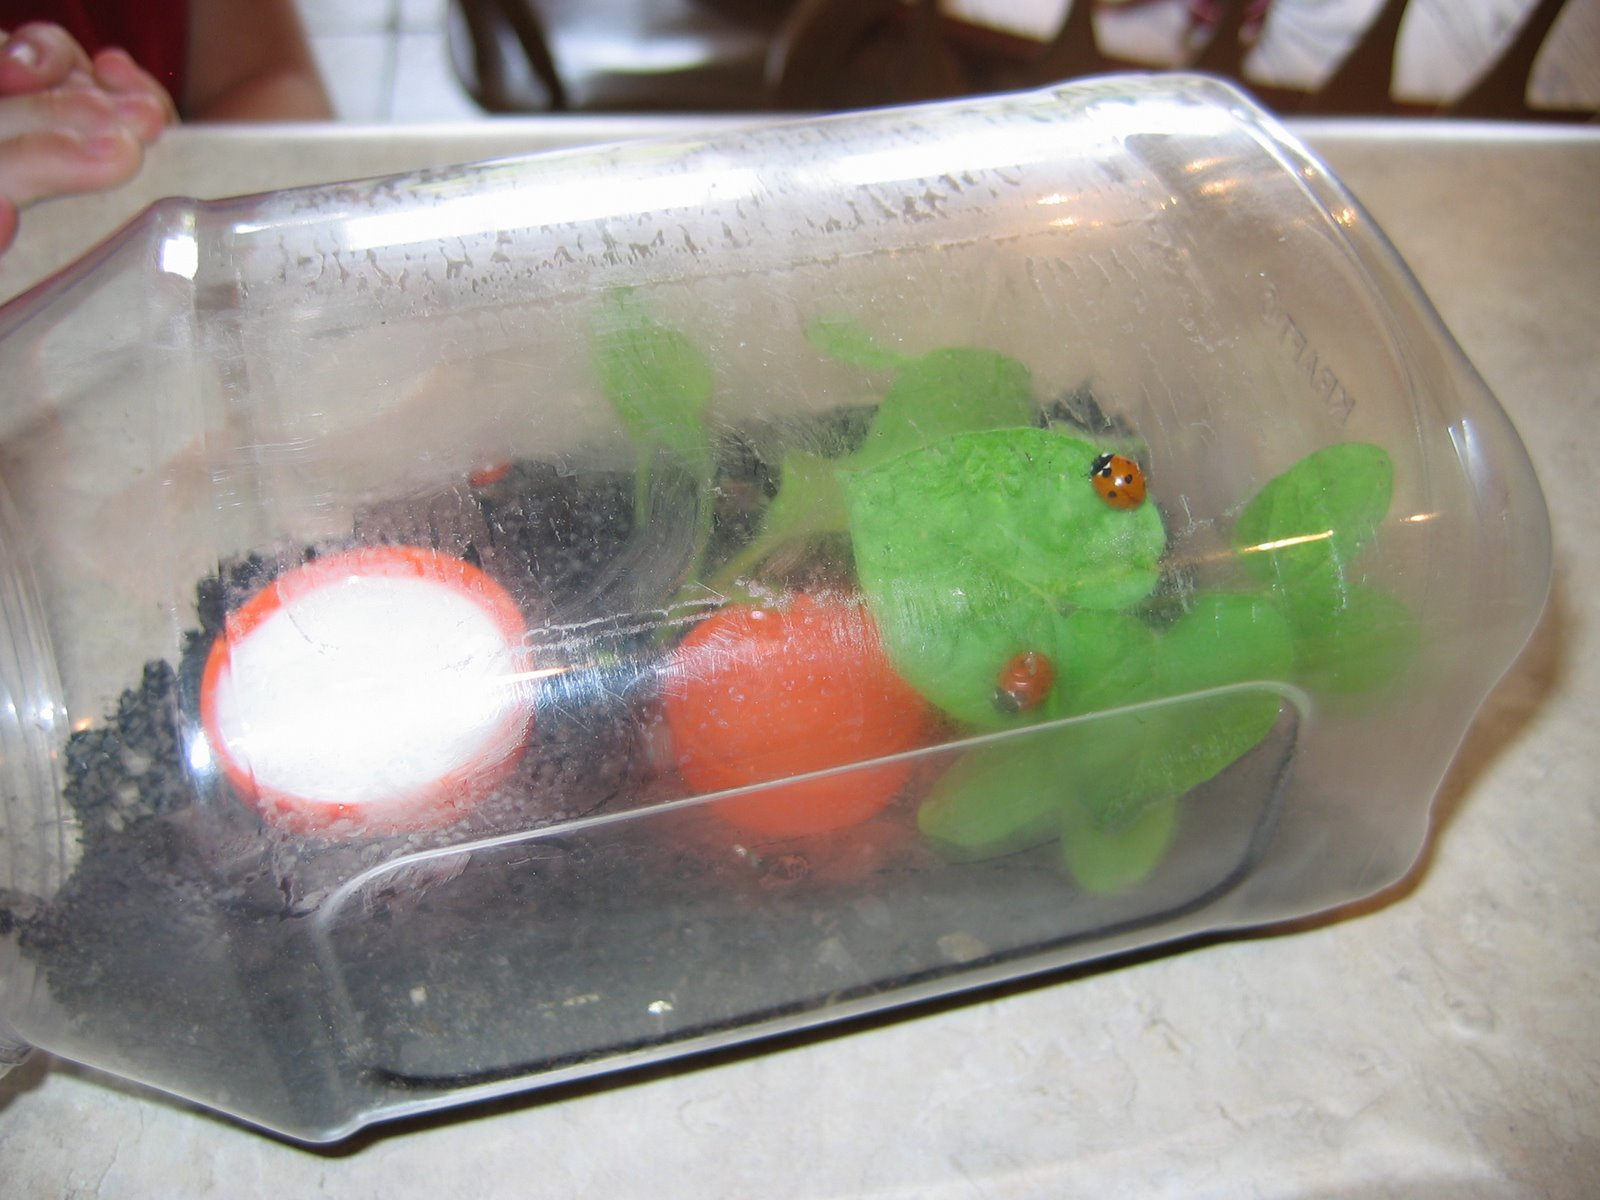 Sweet Pea Has Been Reading In Nature Friend, And Decided After Several  Articles On Keeping Ladybugs As Pets, That She Too Wanted To Create A  Habitat For ...